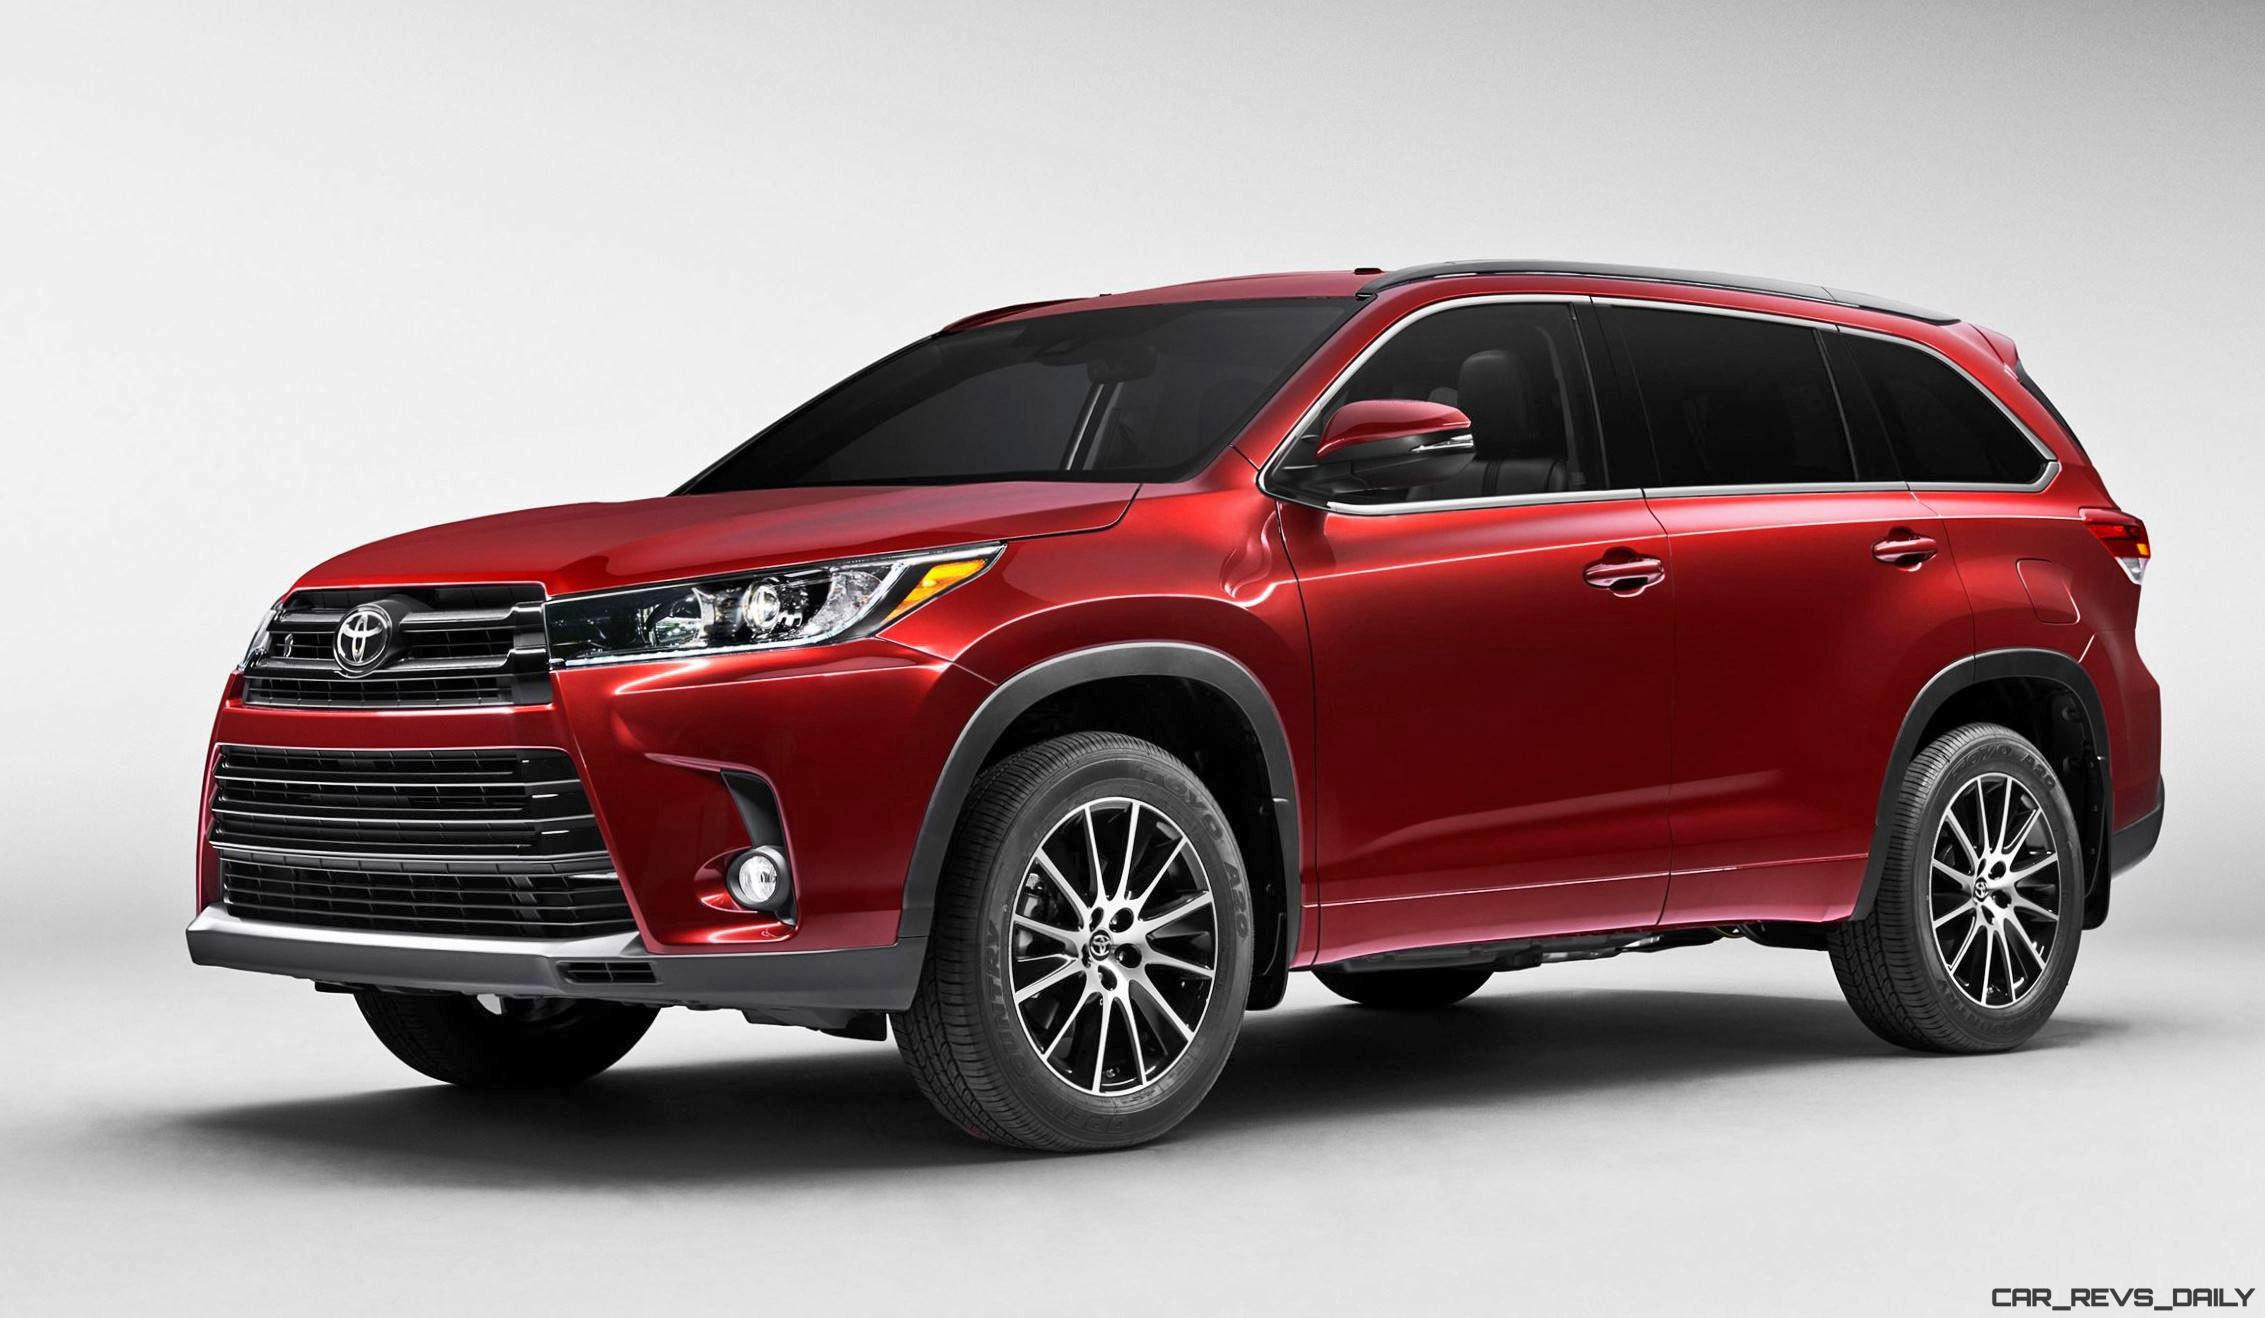 highlander toyota v6 cars revs daily revised styling automatic speed preview